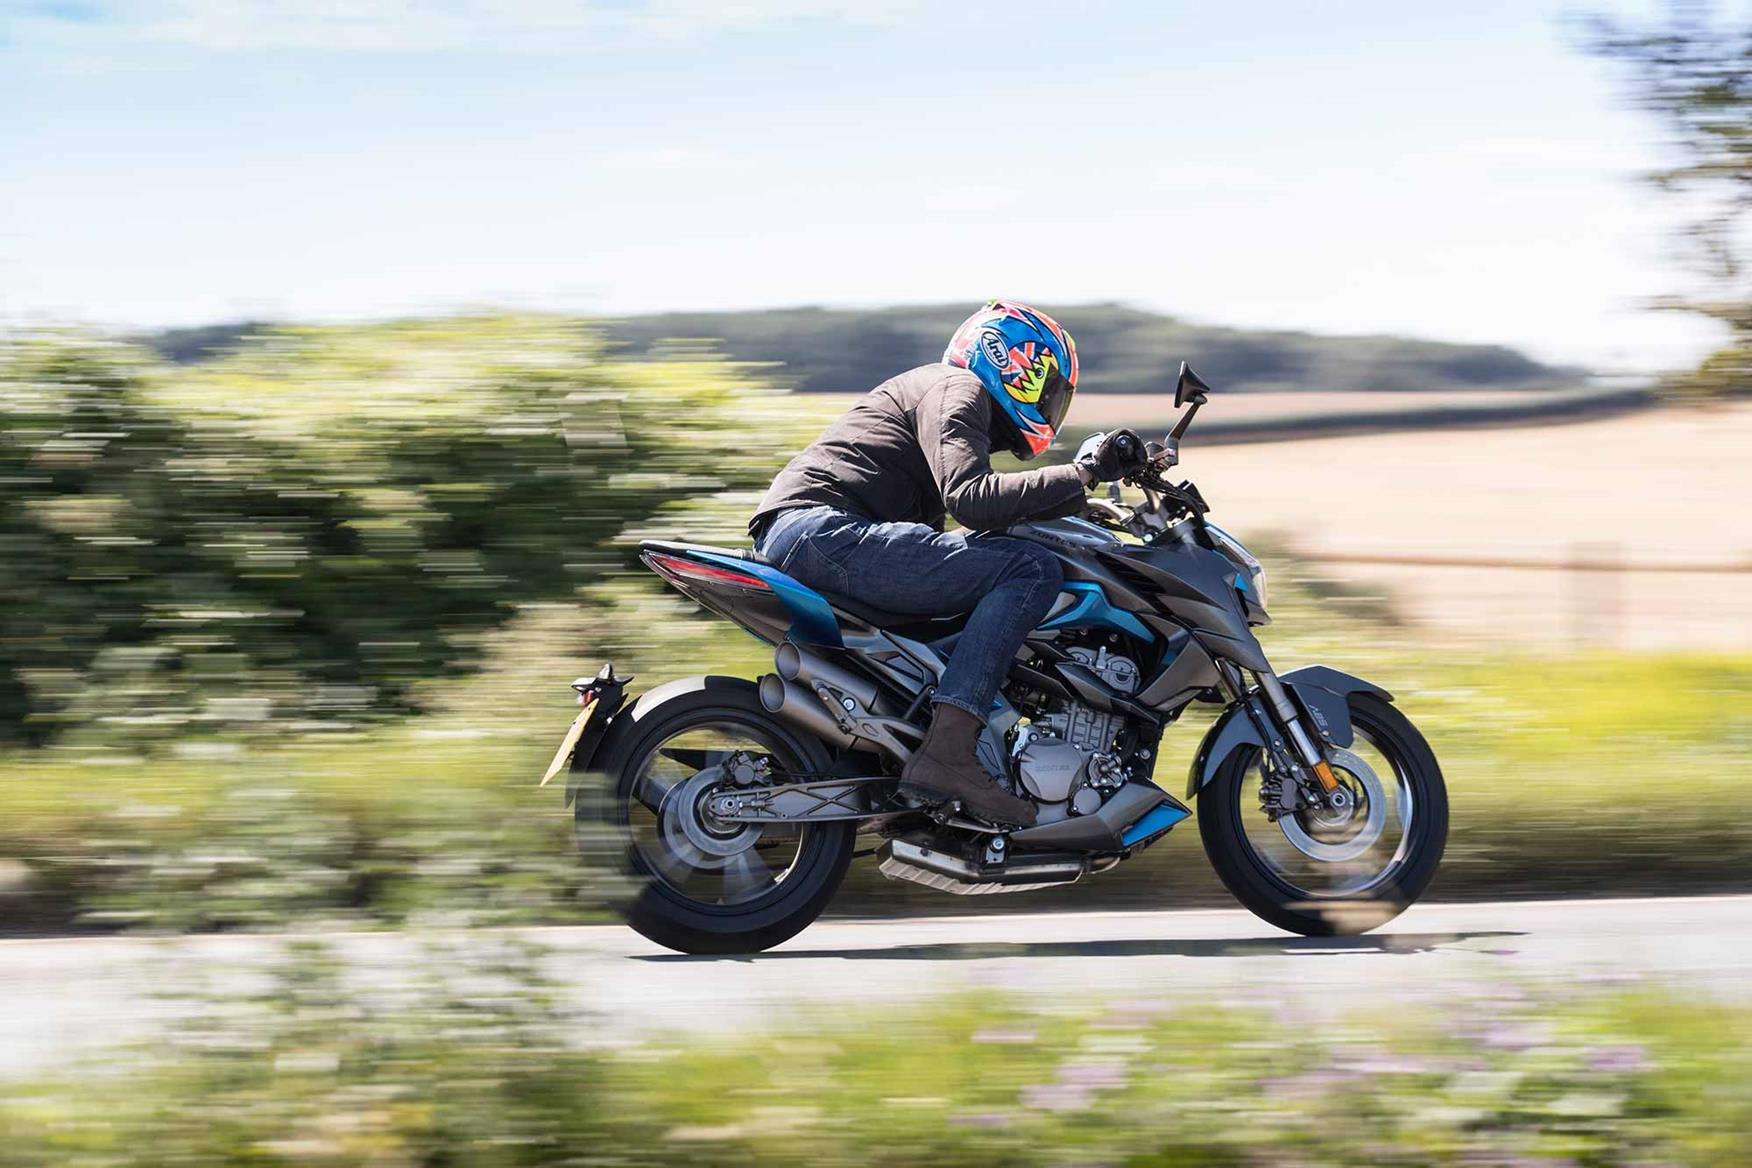 ZONTES R 310 (2019-on) Review